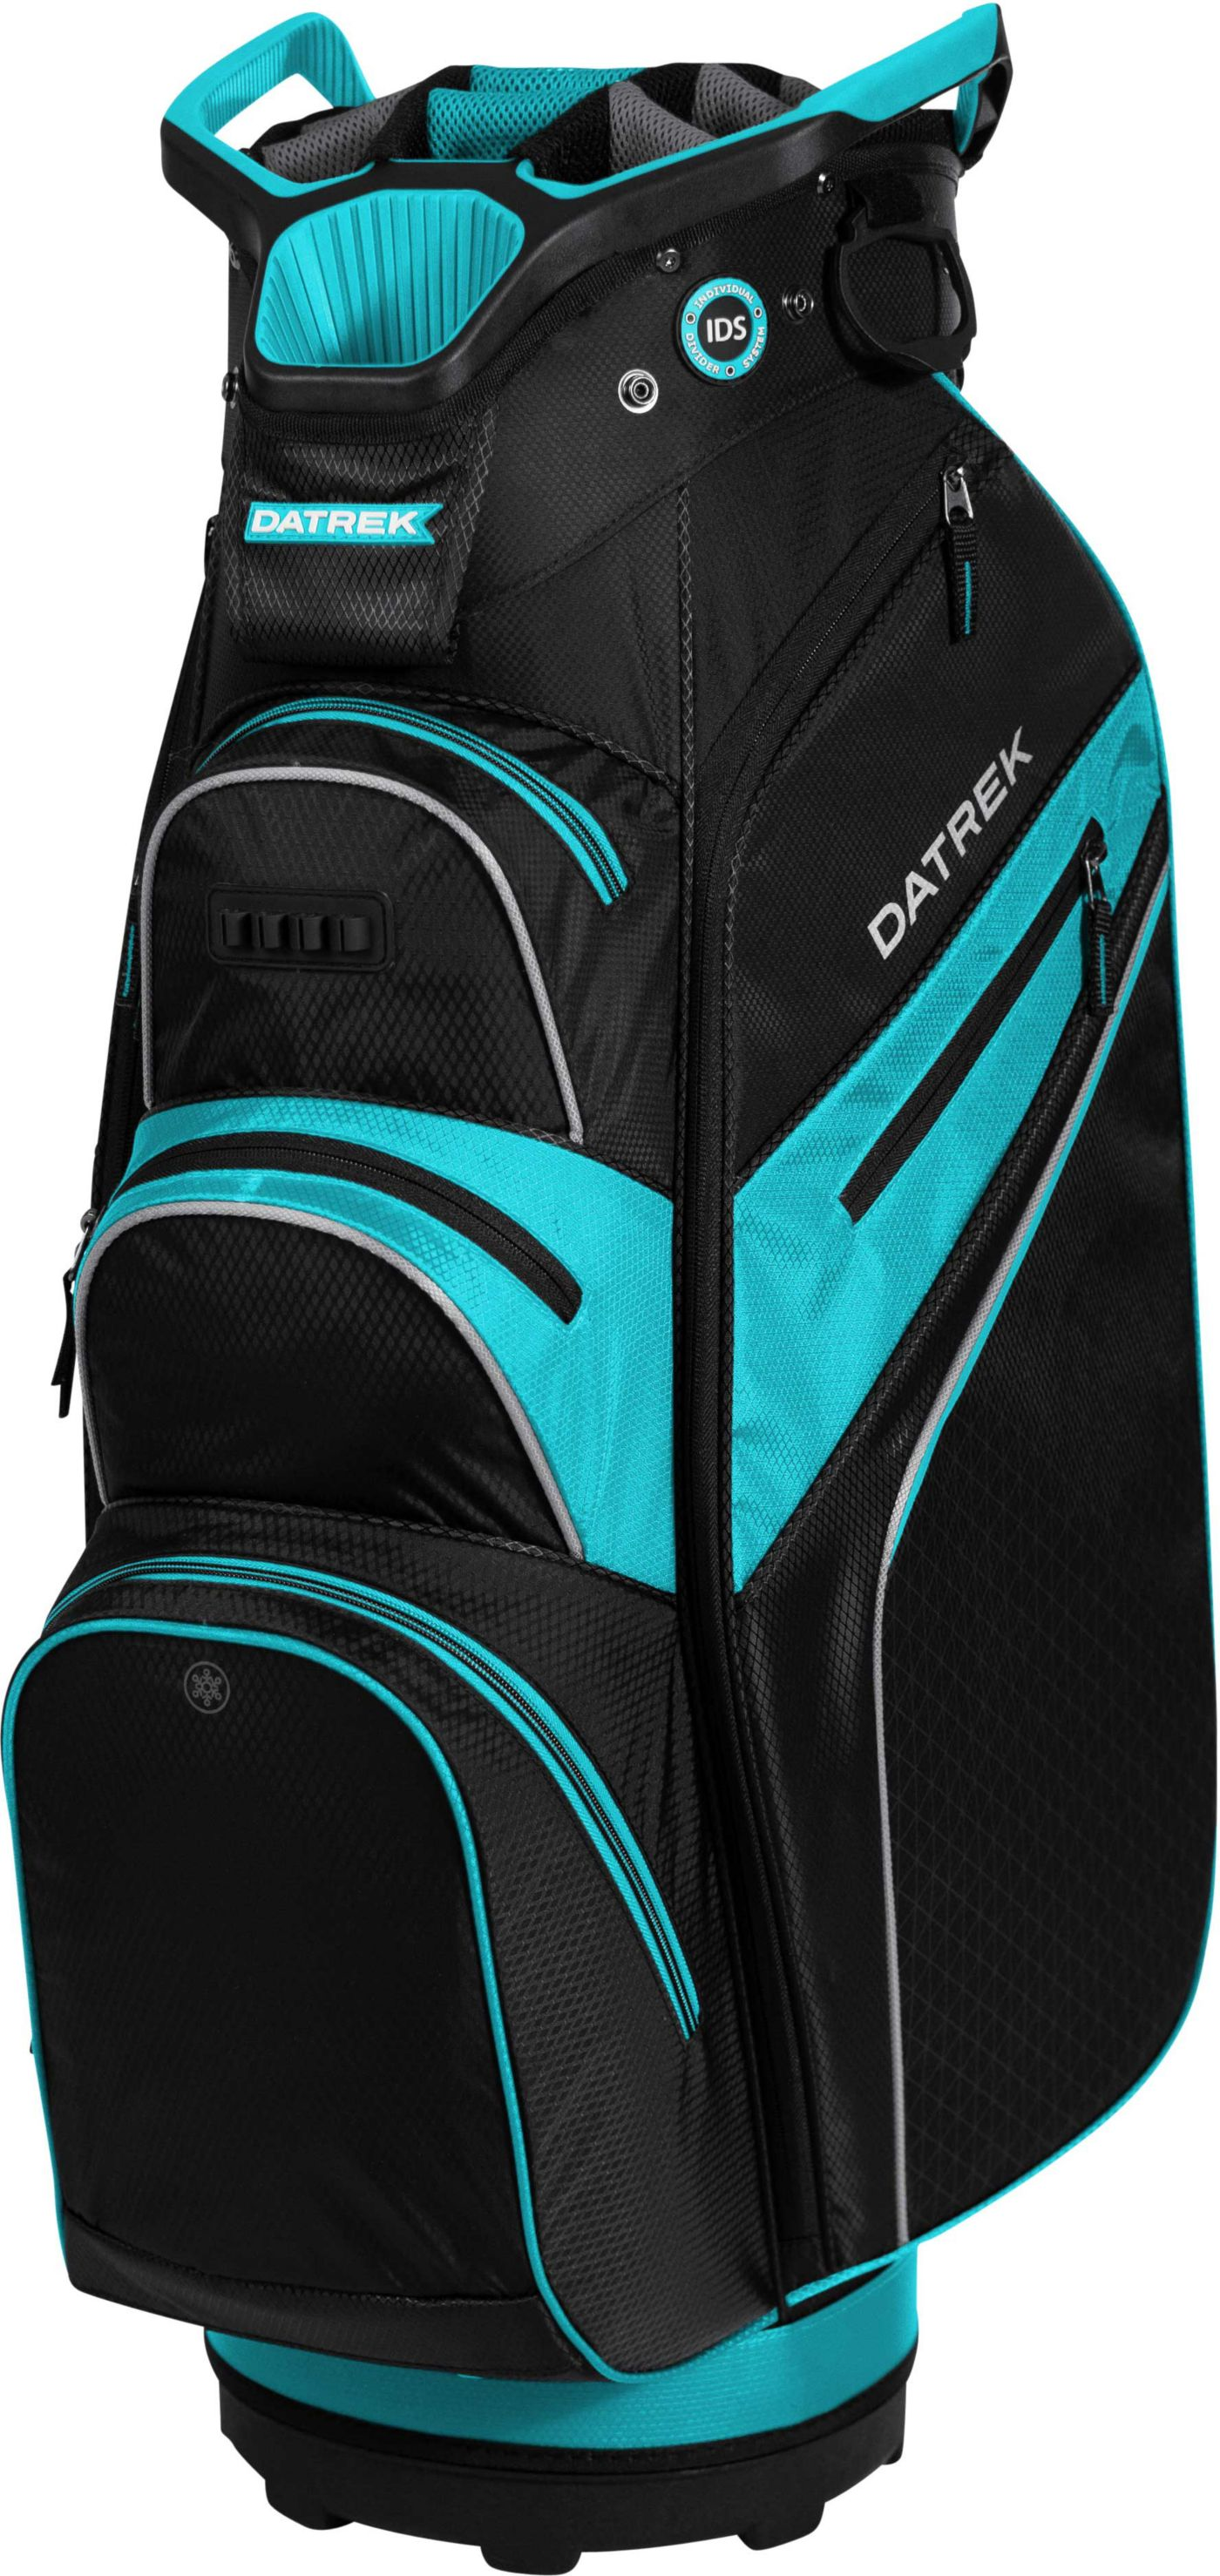 Datrek Lite Rider Pro Cart Golf Bag